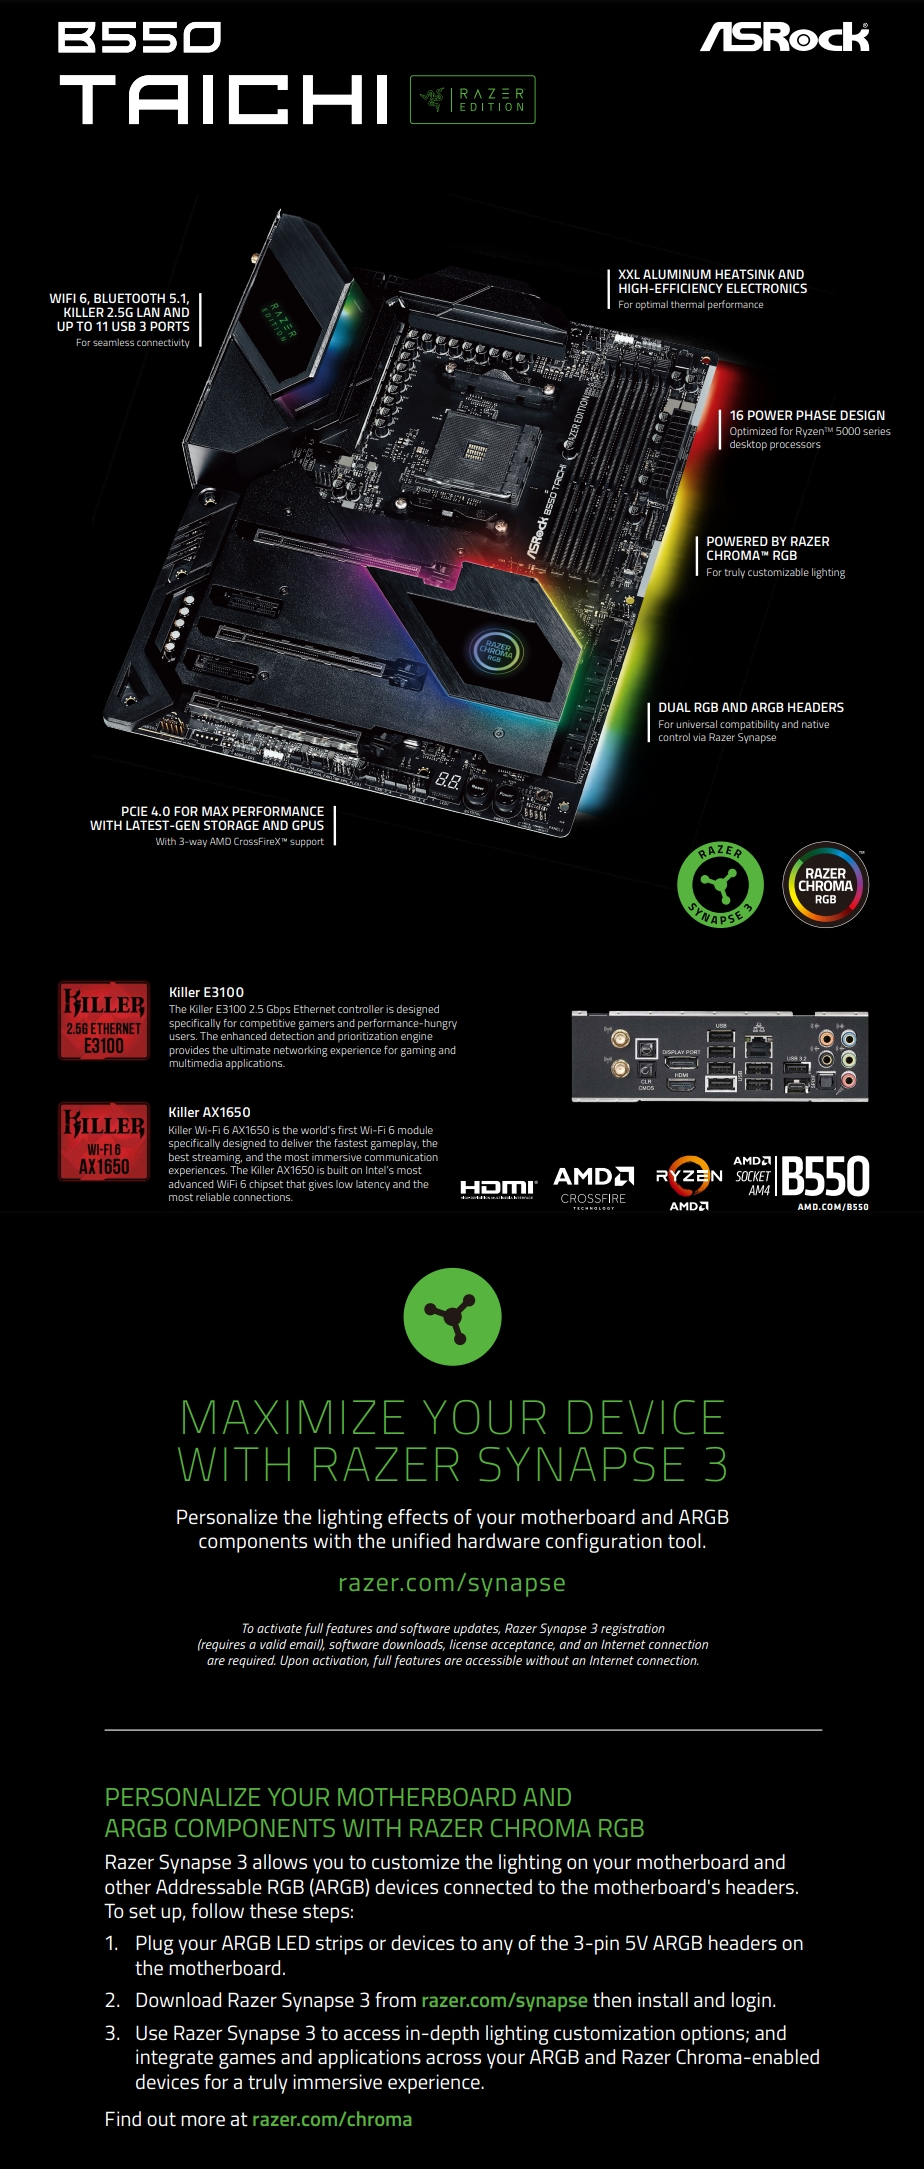 A large marketing image providing additional information about the product ASRock B550 Taichi Razer Edition AM4 ATX Desktop Motherboard - Additional alt info not provided